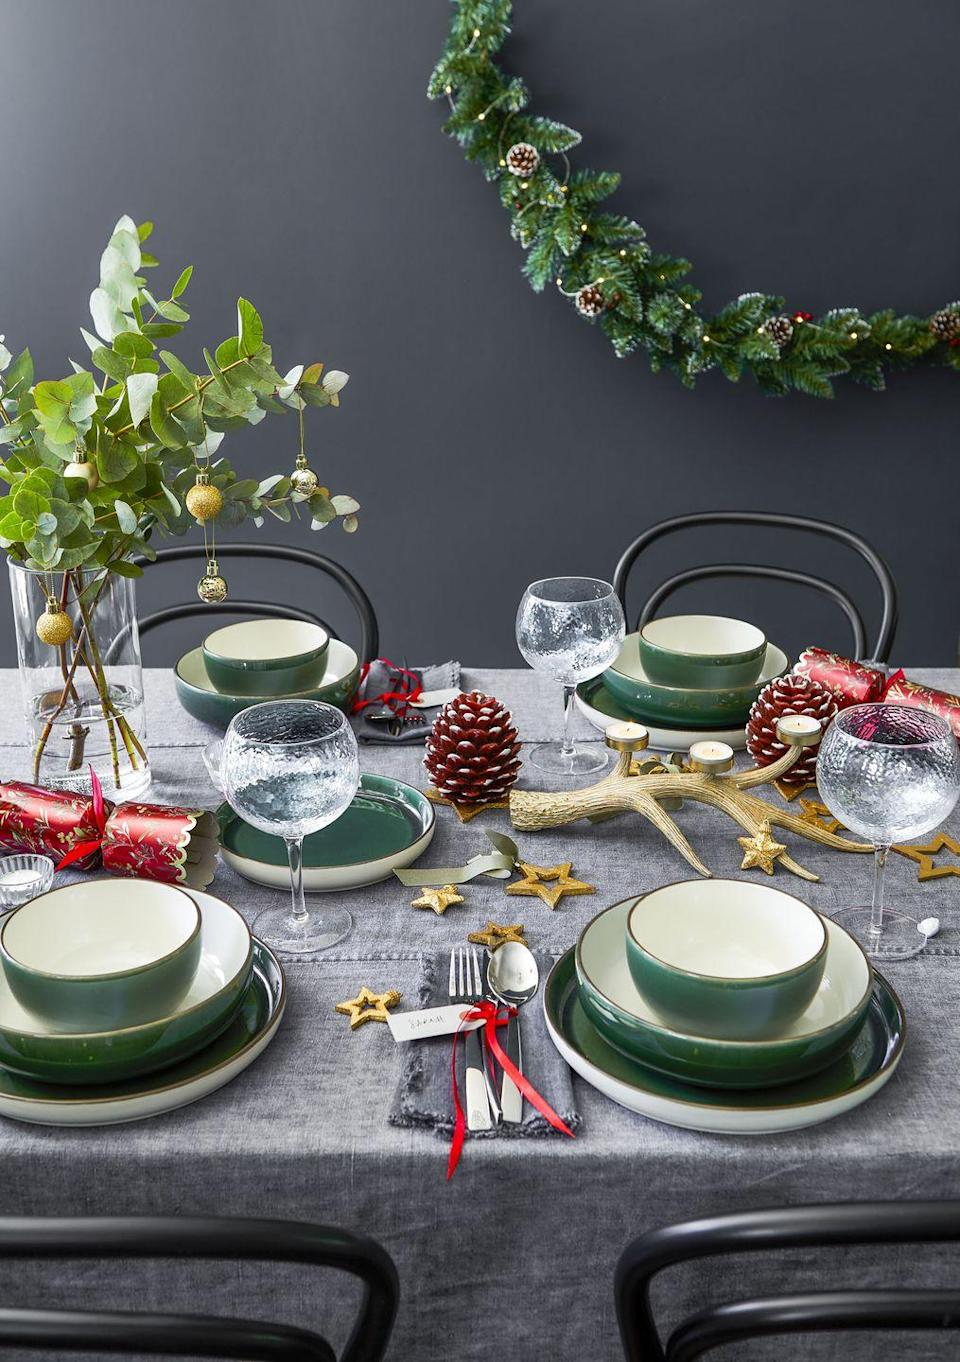 """<p>Create a <a href=""""https://www.housebeautiful.com/uk/decorate/looks/a35055193/christmas-table-ideas/"""" rel=""""nofollow noopener"""" target=""""_blank"""" data-ylk=""""slk:Christmas tablescape"""" class=""""link rapid-noclick-resp"""">Christmas tablescape</a> to remember with Tesco's Fox & Ivy homeware range. Some of the standout pieces to have on your radar include luxury red crackers (£12), gorgeous <a href=""""https://www.housebeautiful.com/uk/lifestyle/shopping/g29585316/christmas-garland/"""" rel=""""nofollow noopener"""" target=""""_blank"""" data-ylk=""""slk:garlands"""" class=""""link rapid-noclick-resp"""">garlands</a> (£10), and a 12-piece dinnerware set (£35) that has all you need for the ultimate festive feast. Why not bring some holiday cheer to your table this season...</p>"""